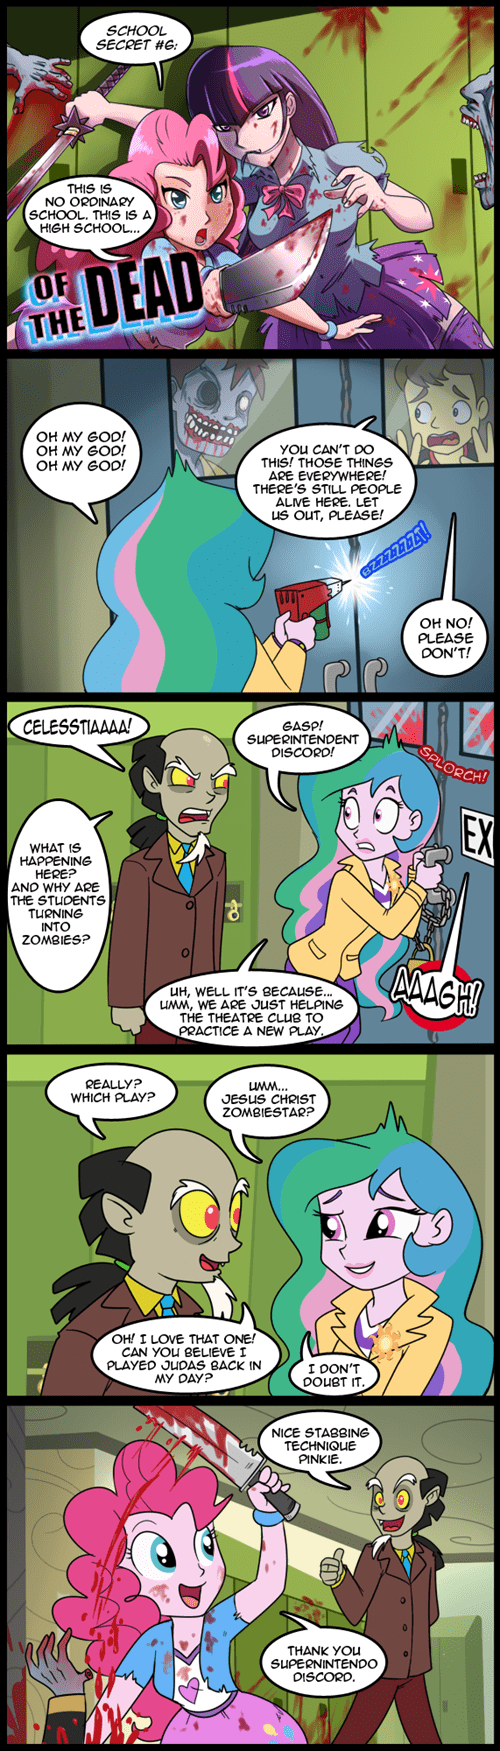 Canterlot high school of the dead